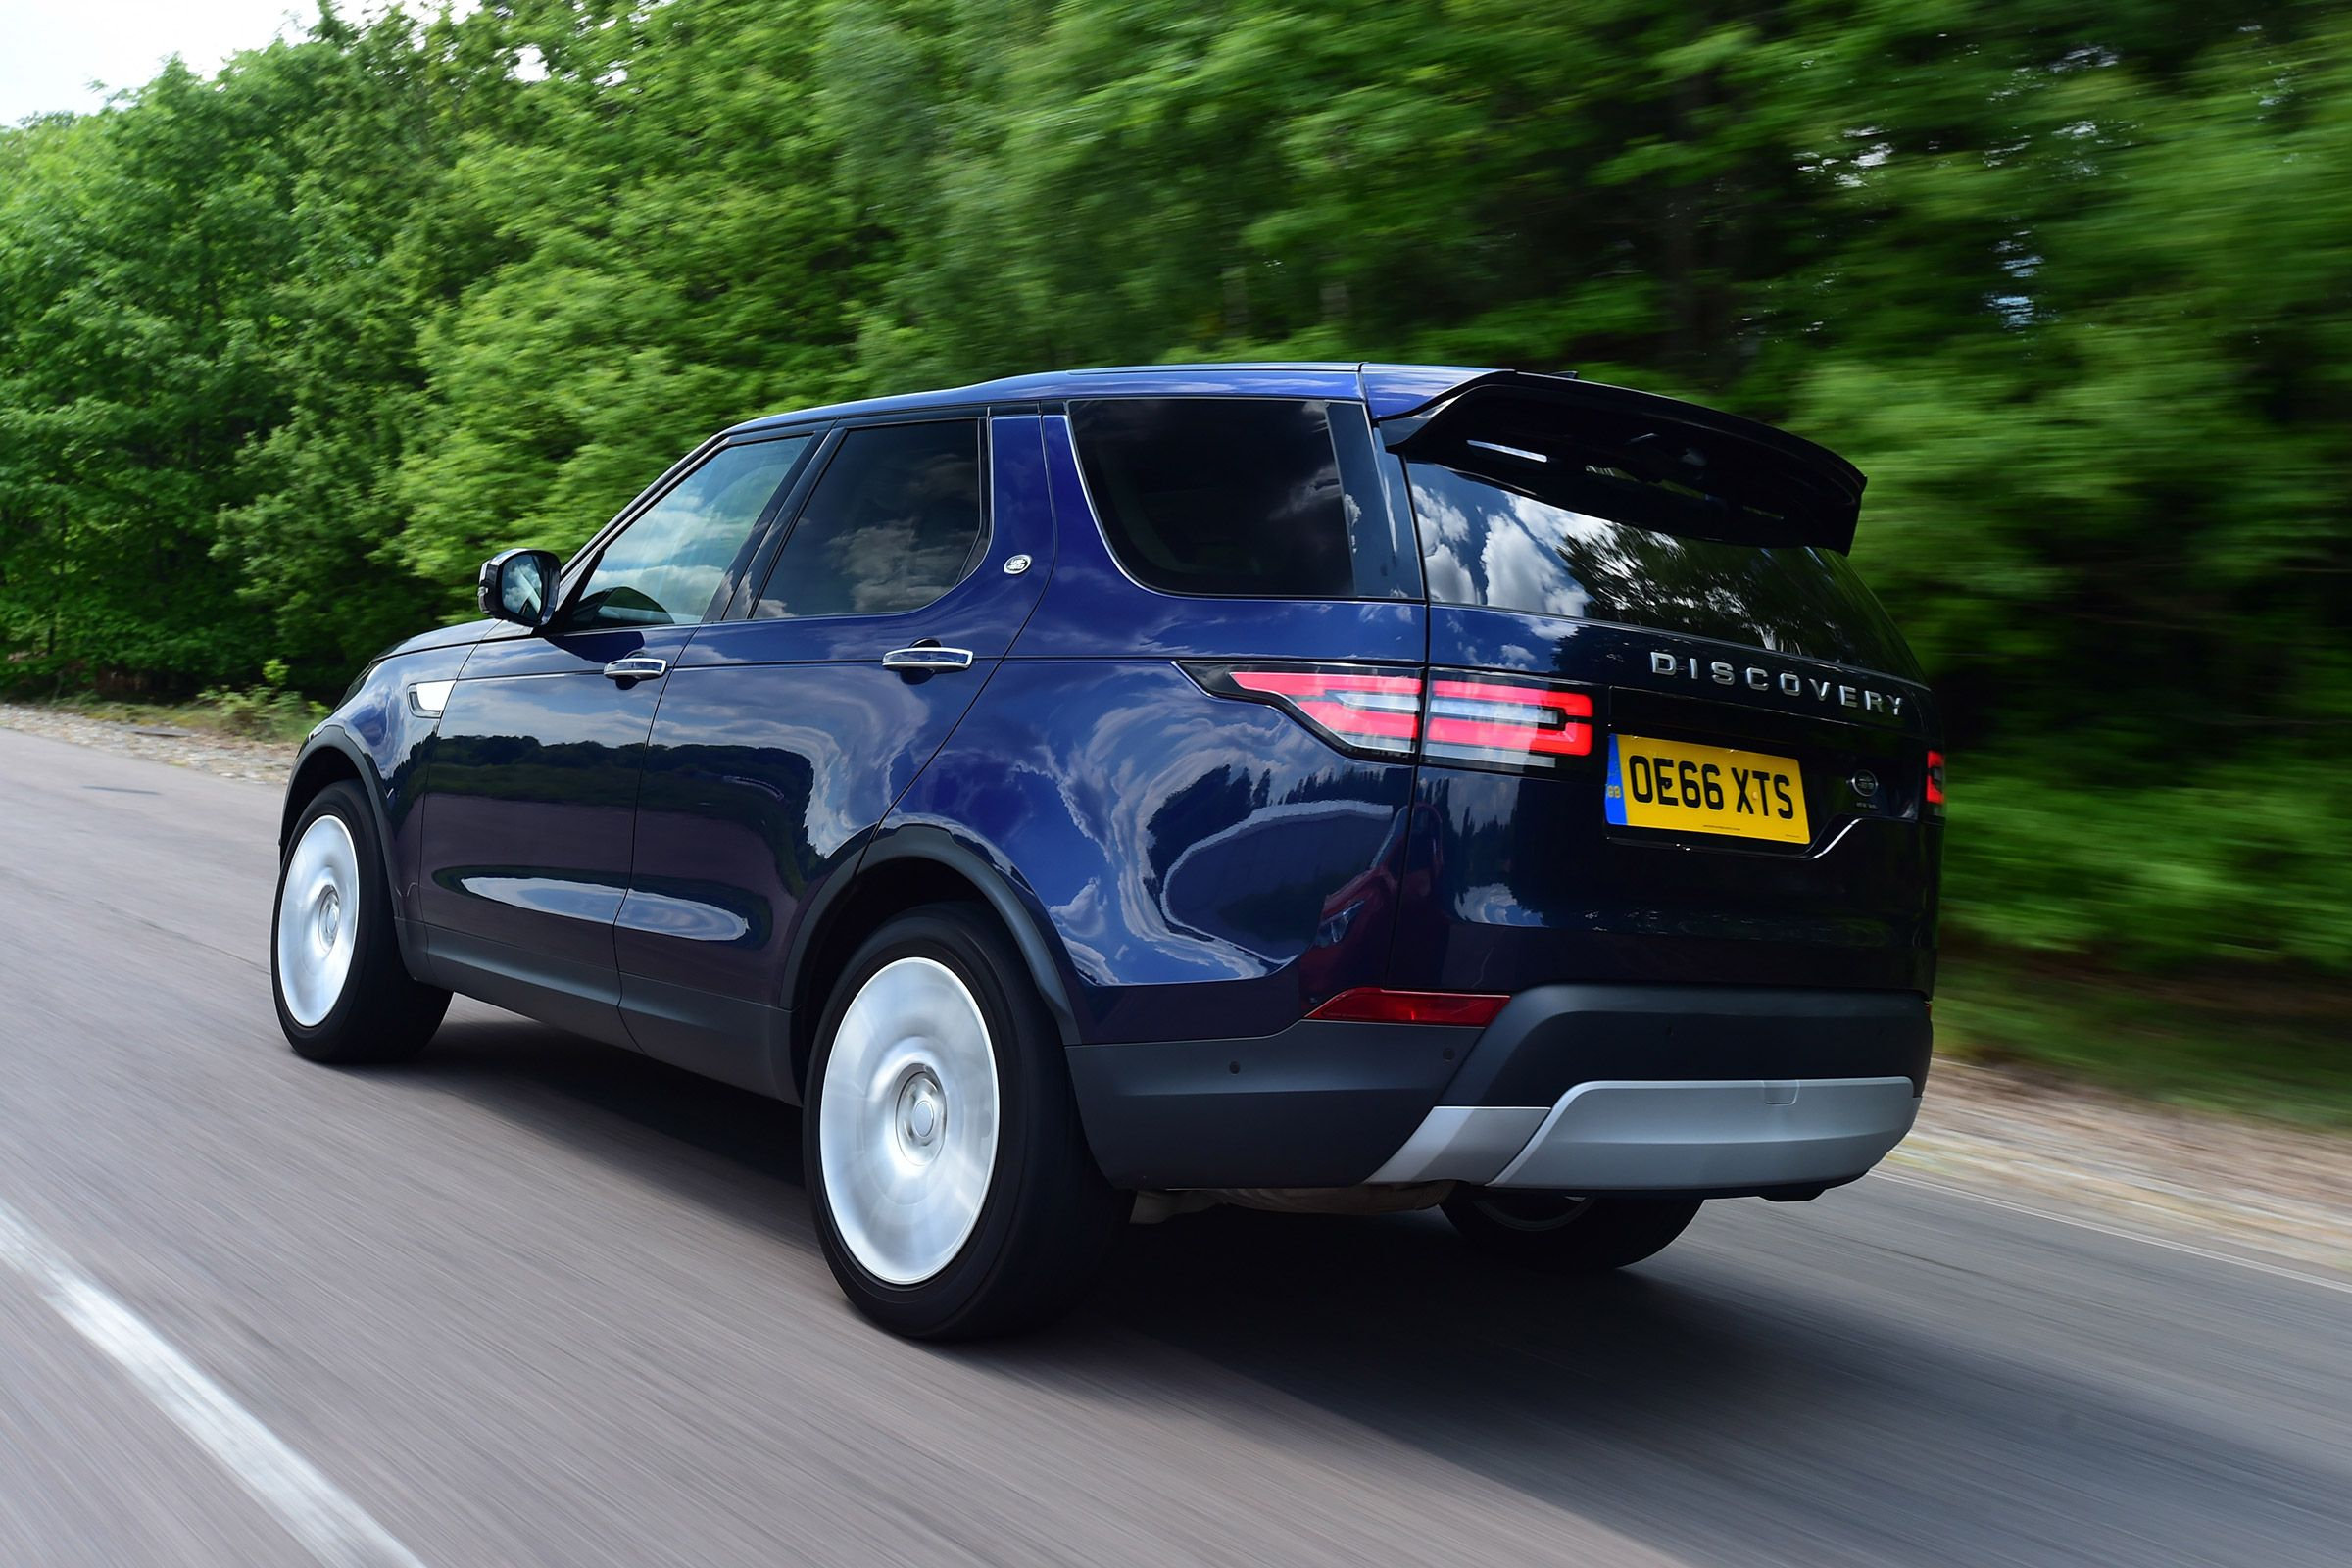 Punchy Six Cylindersel Land Rover Discovery Suv Arrives On British Roads But How